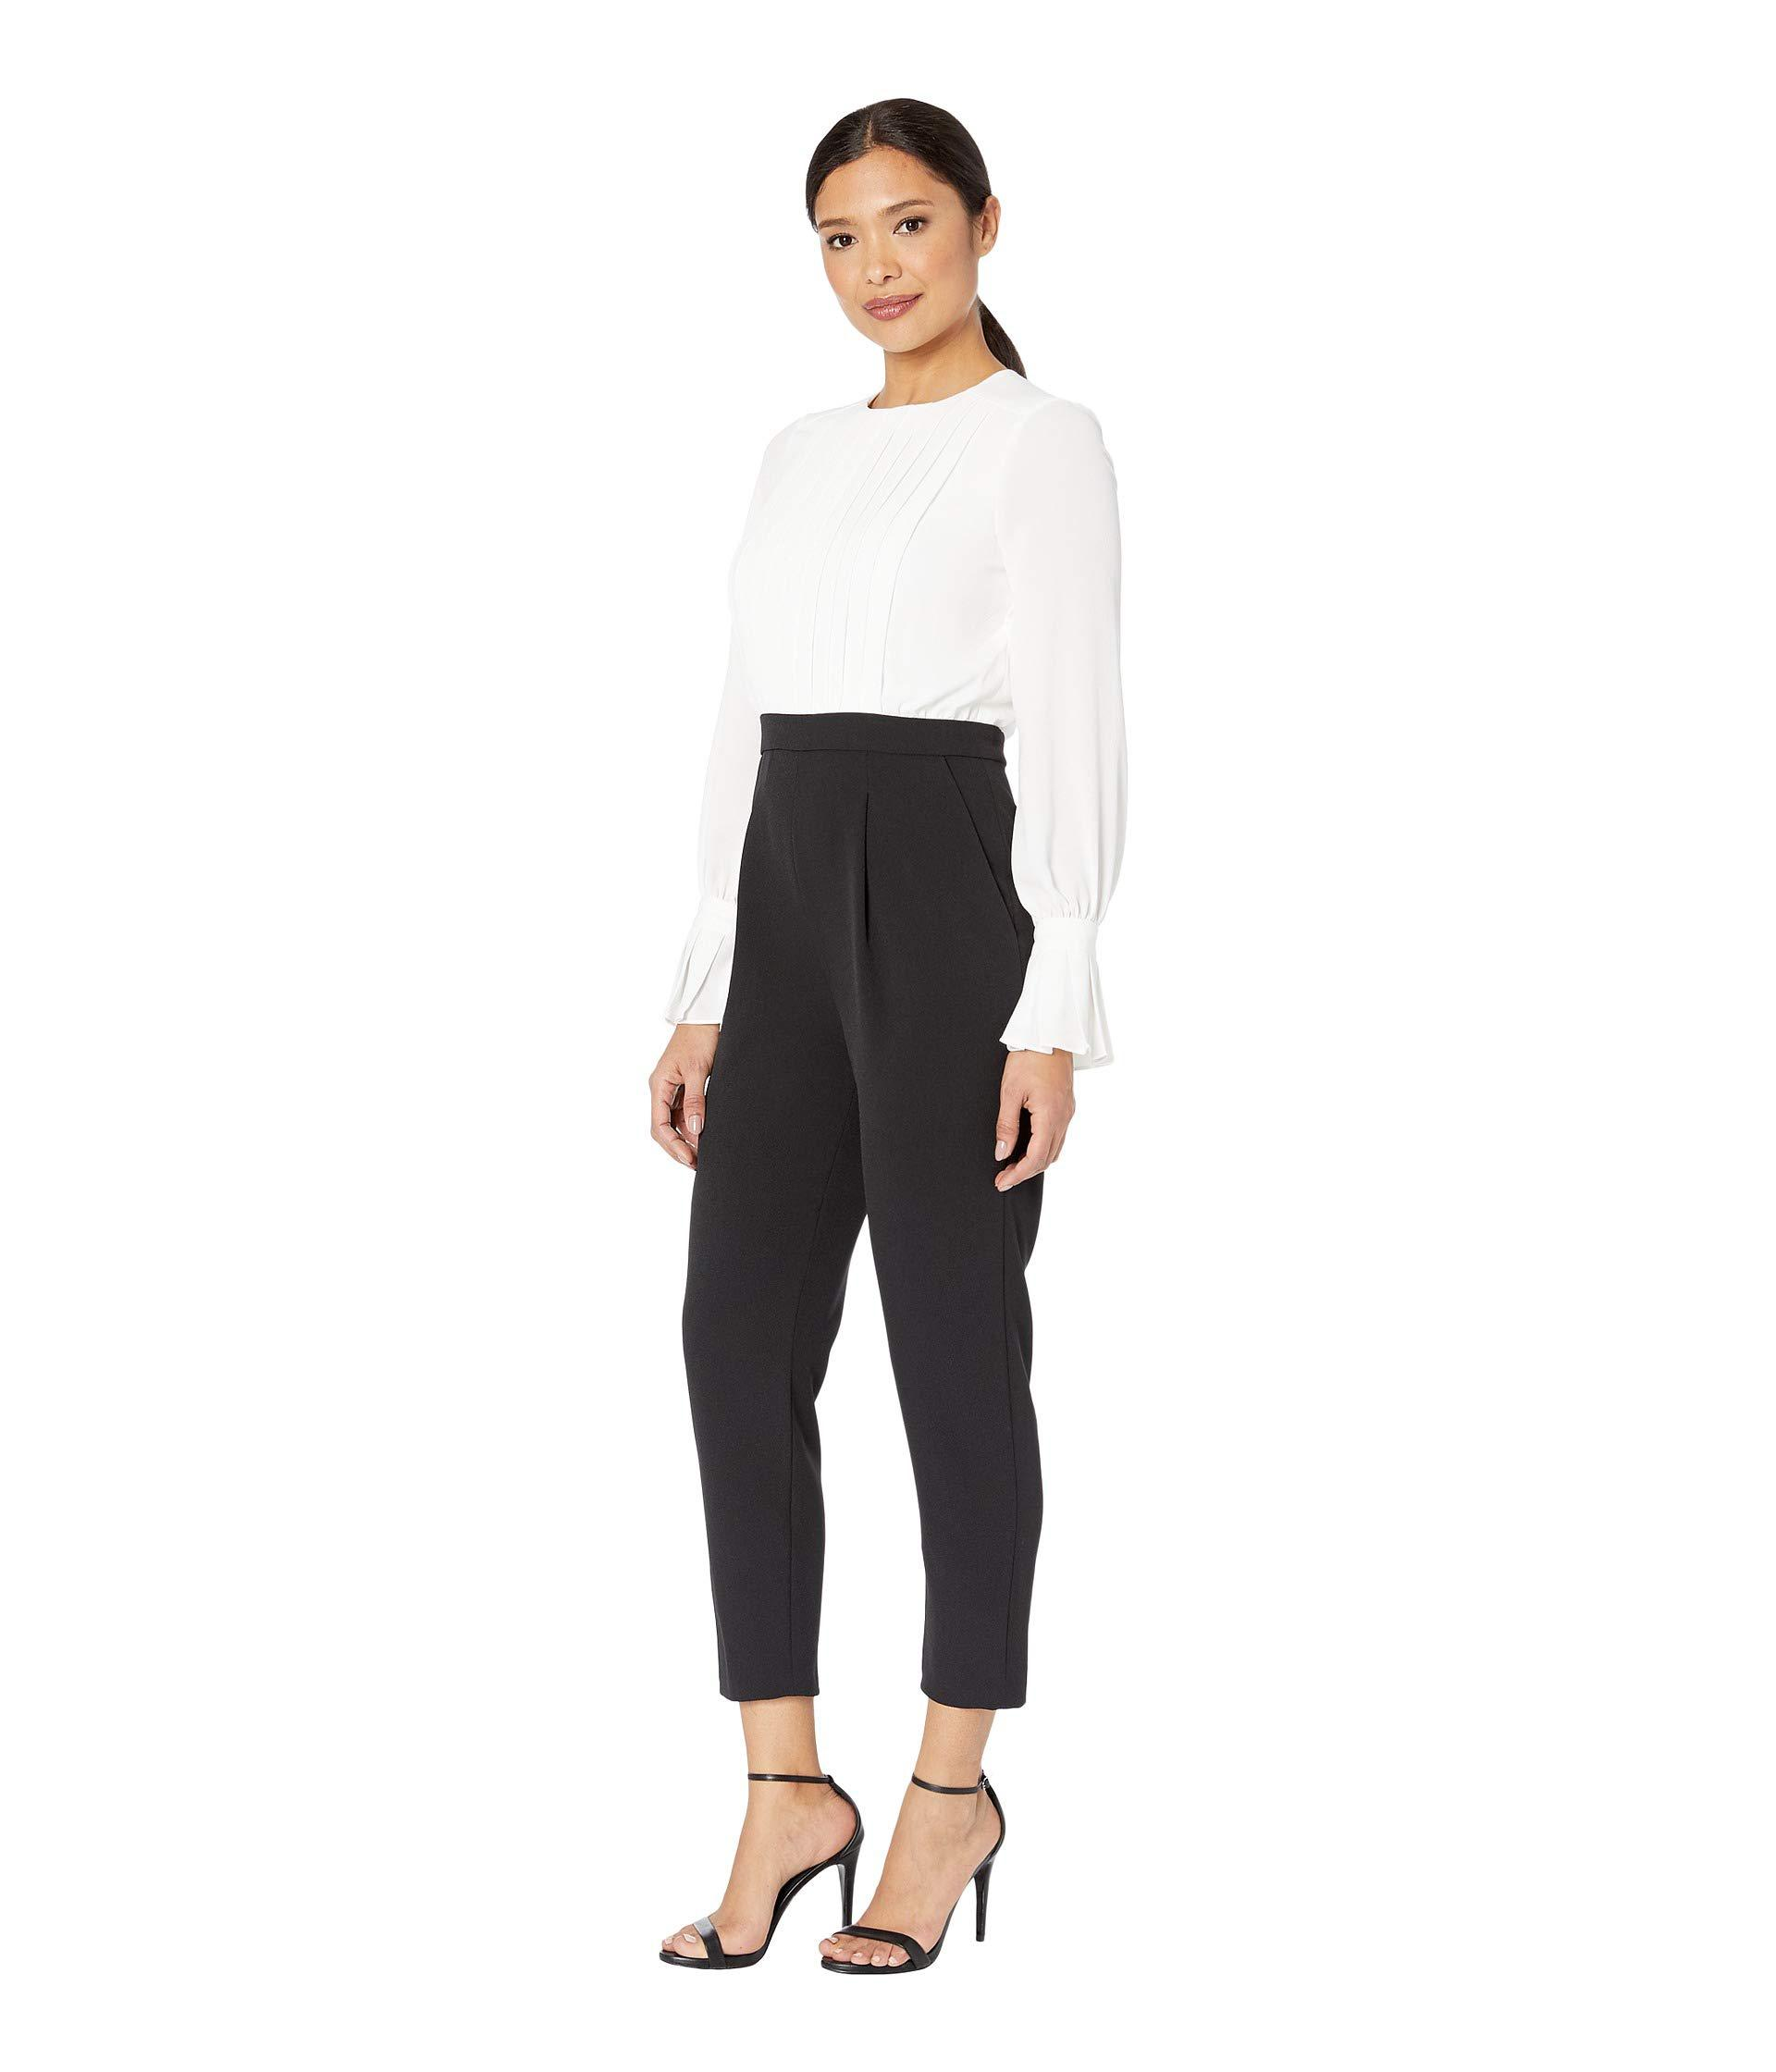 4e145d4644f Lyst - Maggy London Tucked Front Crepe Jumpsuit (ivory black) Women s  Jumpsuit   Rompers One Piece in Black